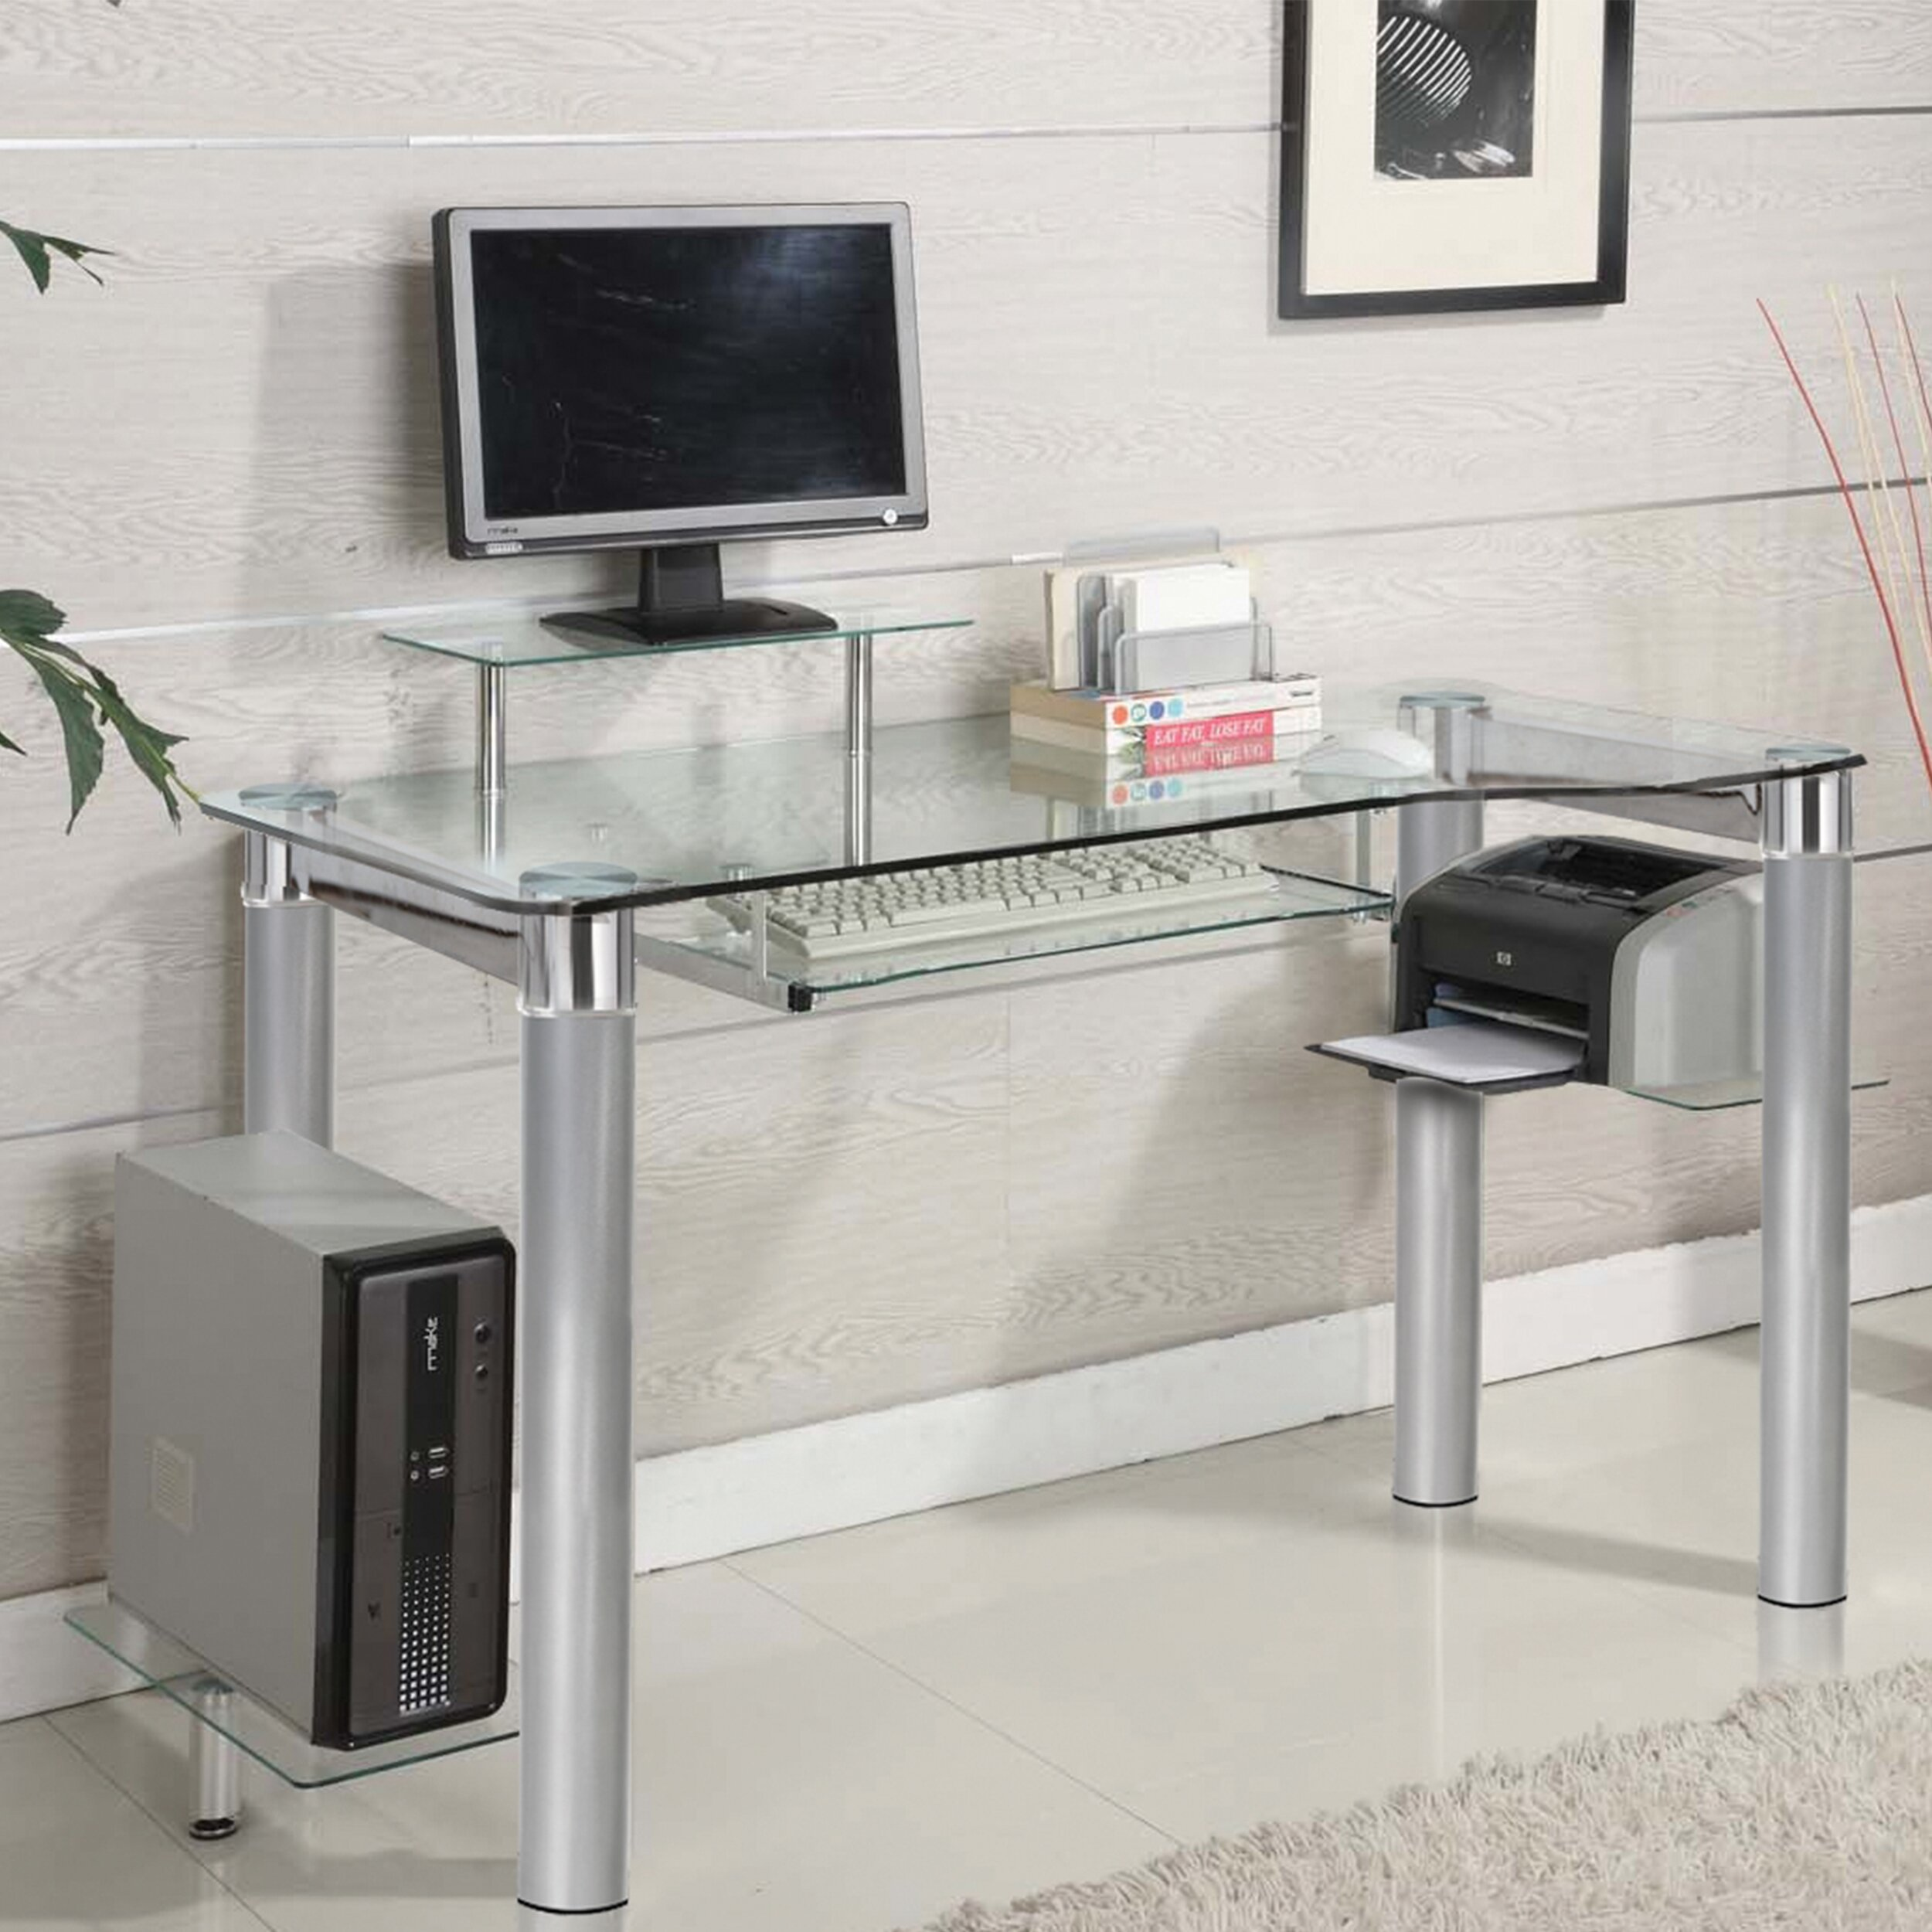 Design Acrylic Desks furniture home acrylic desk ikea wall leaning and bookcase computer hostgarcia